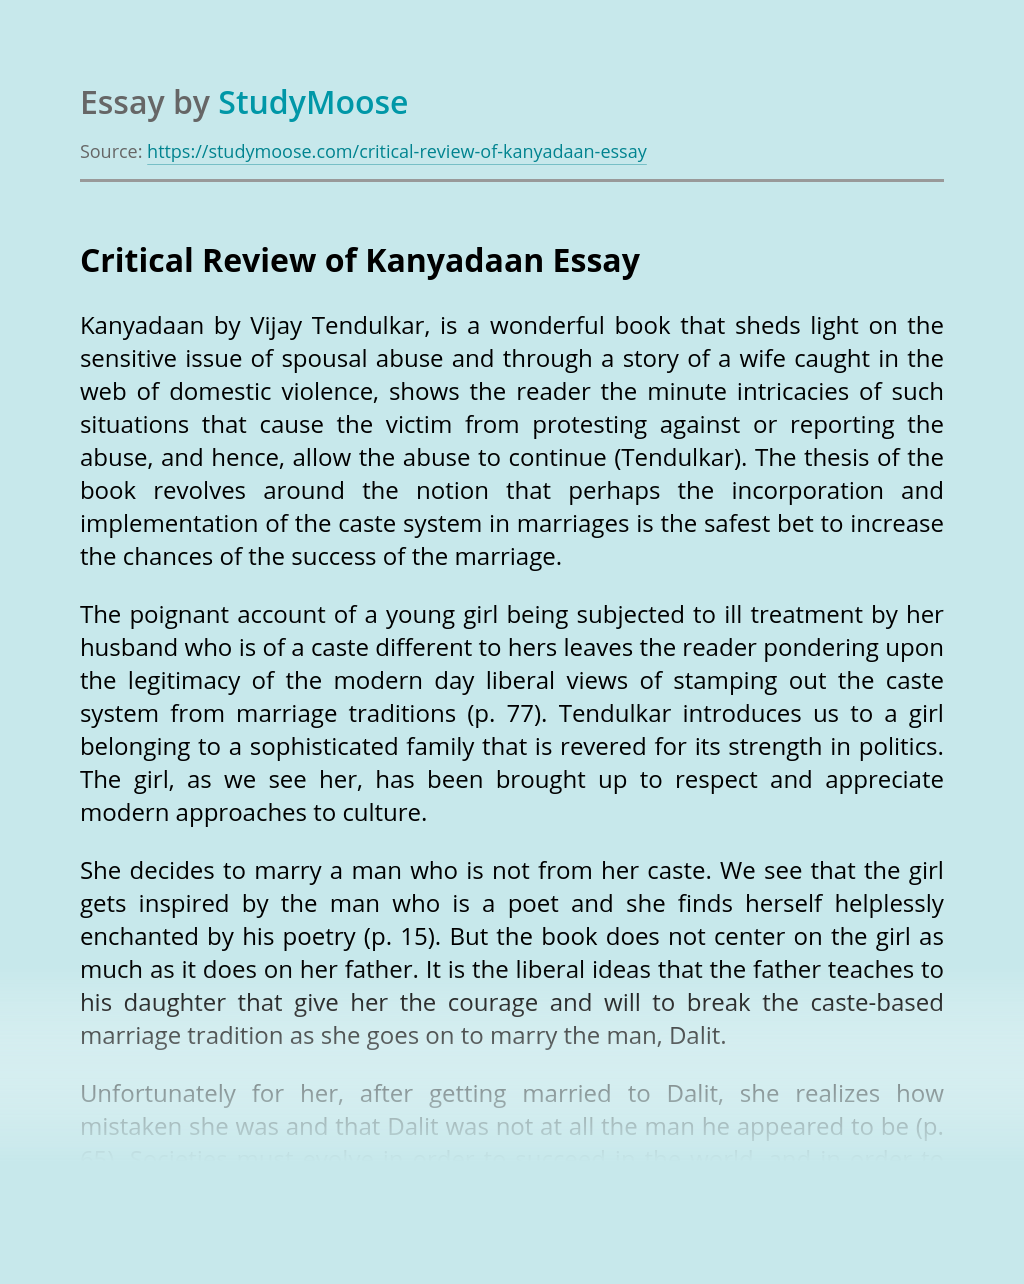 Critical Review of Kanyadaan